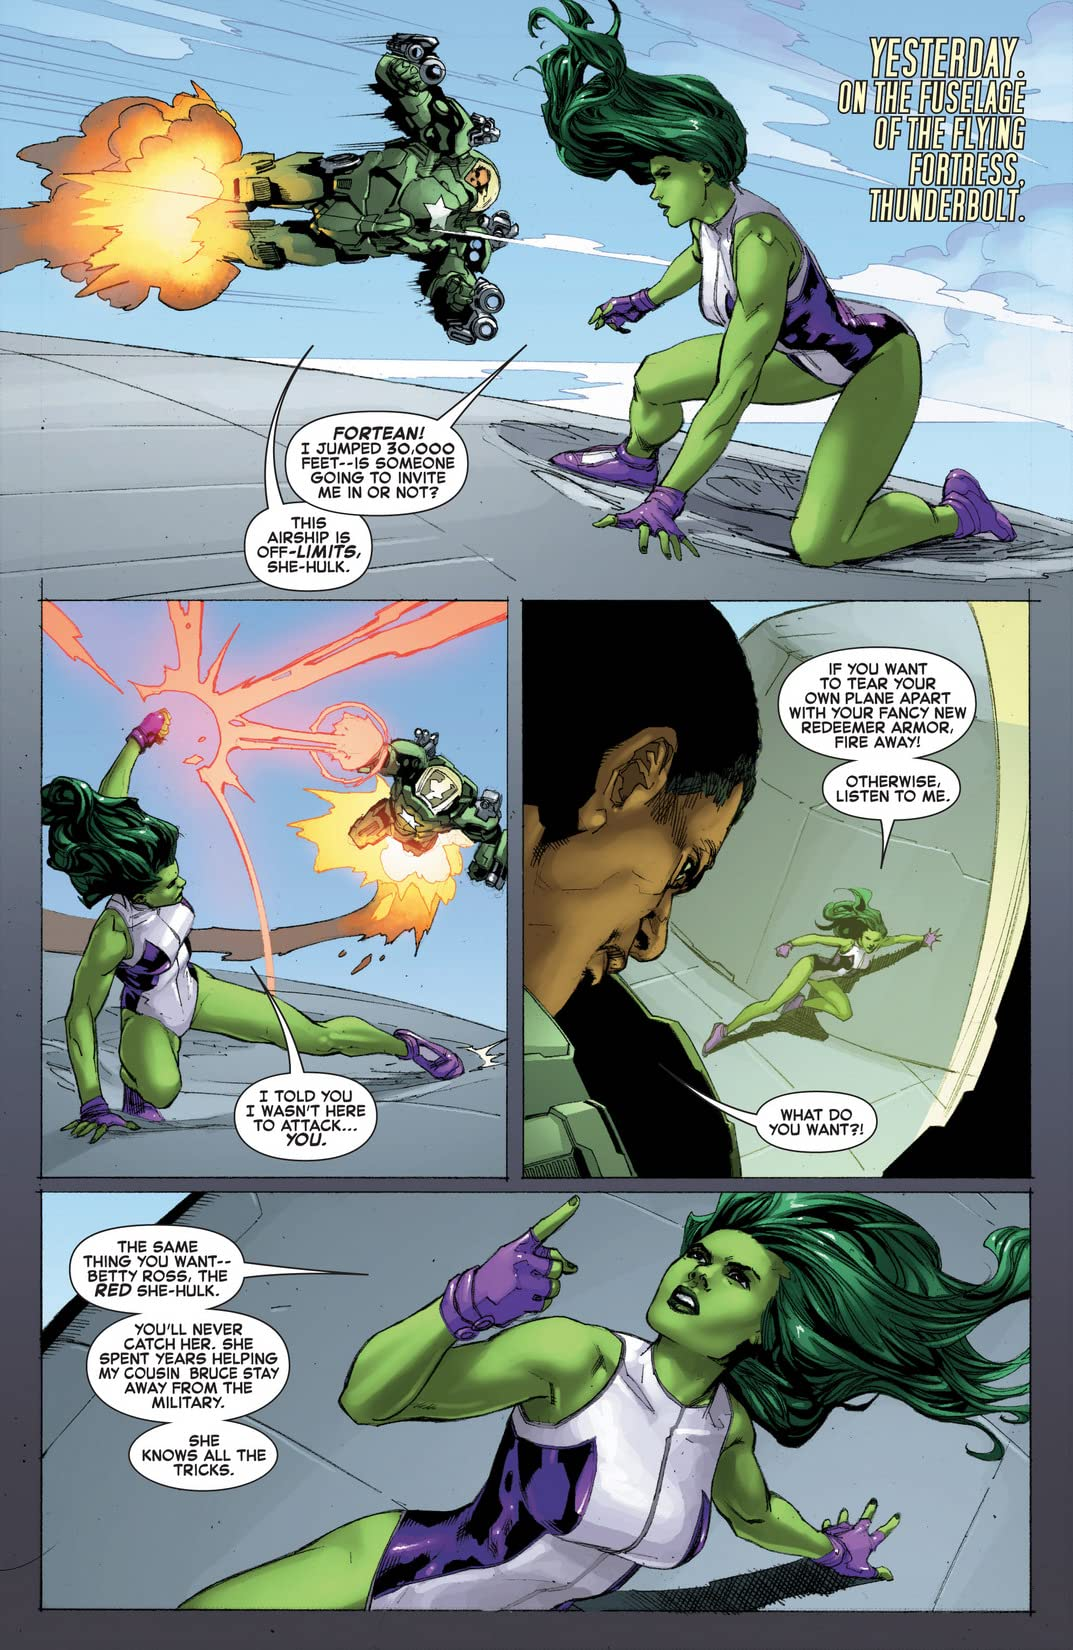 Red She-Hulk (2012-2013) #65